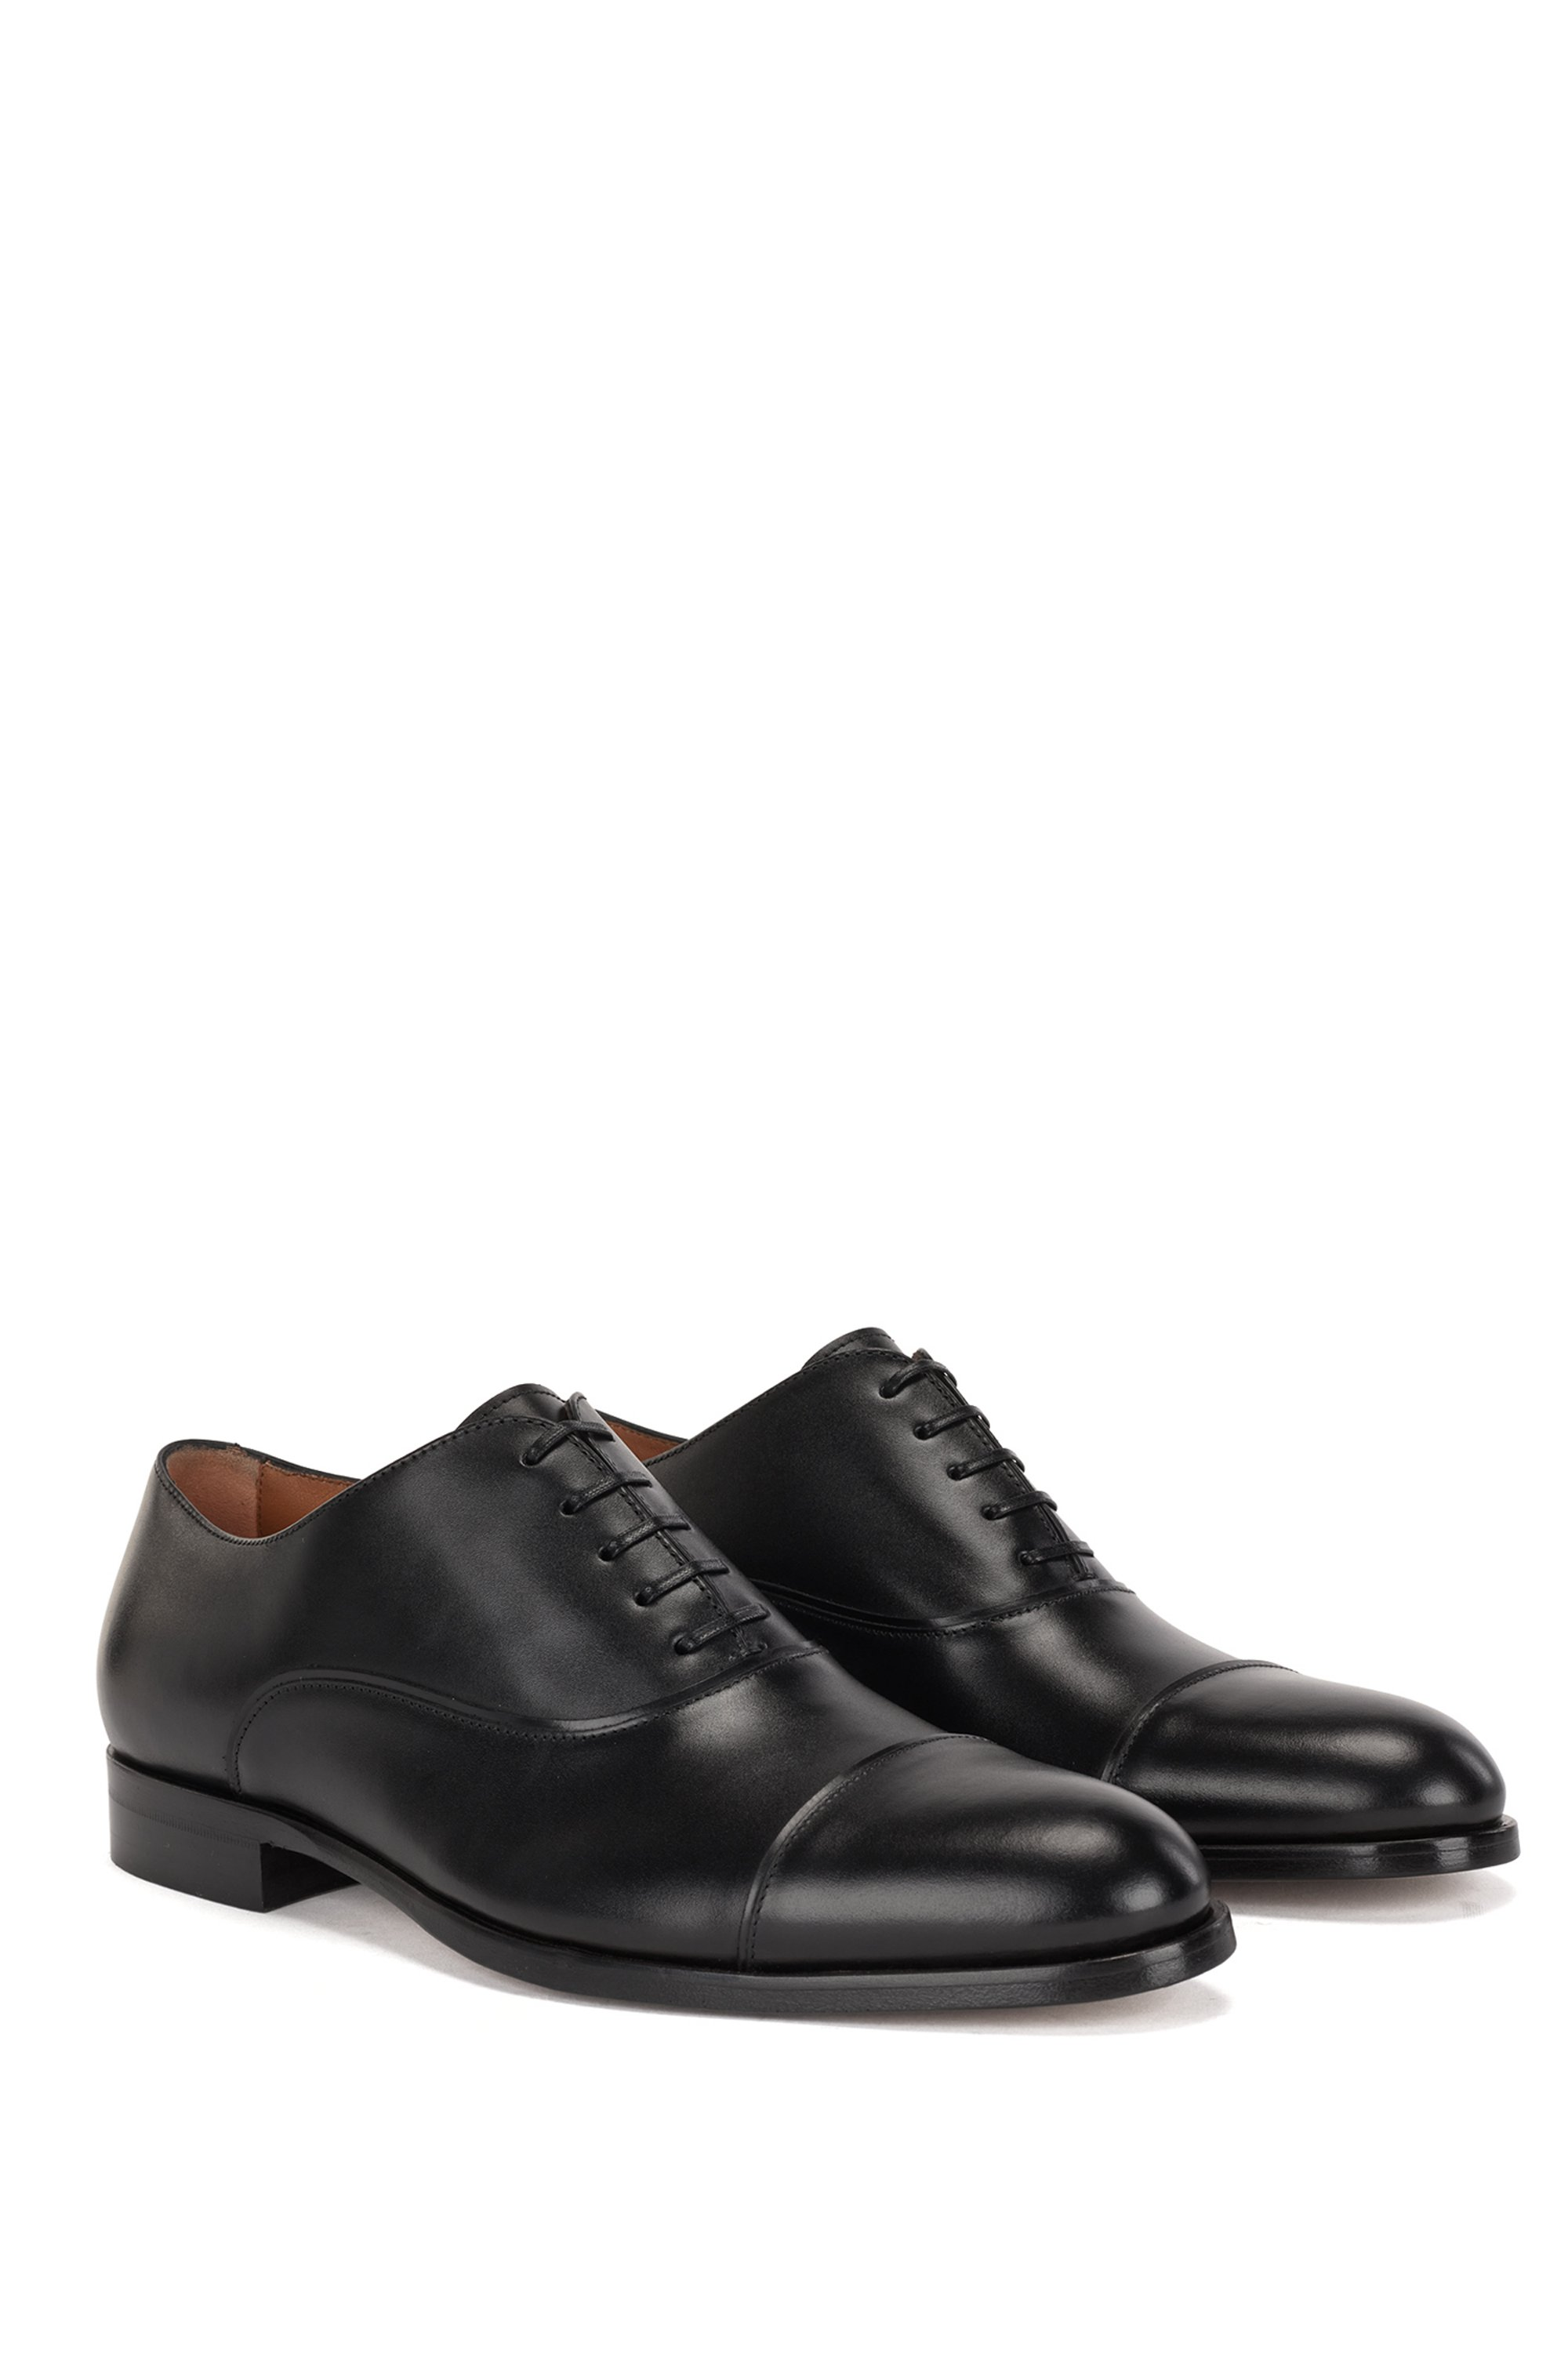 Italian-made cap-toe Oxford shoes in calf leather